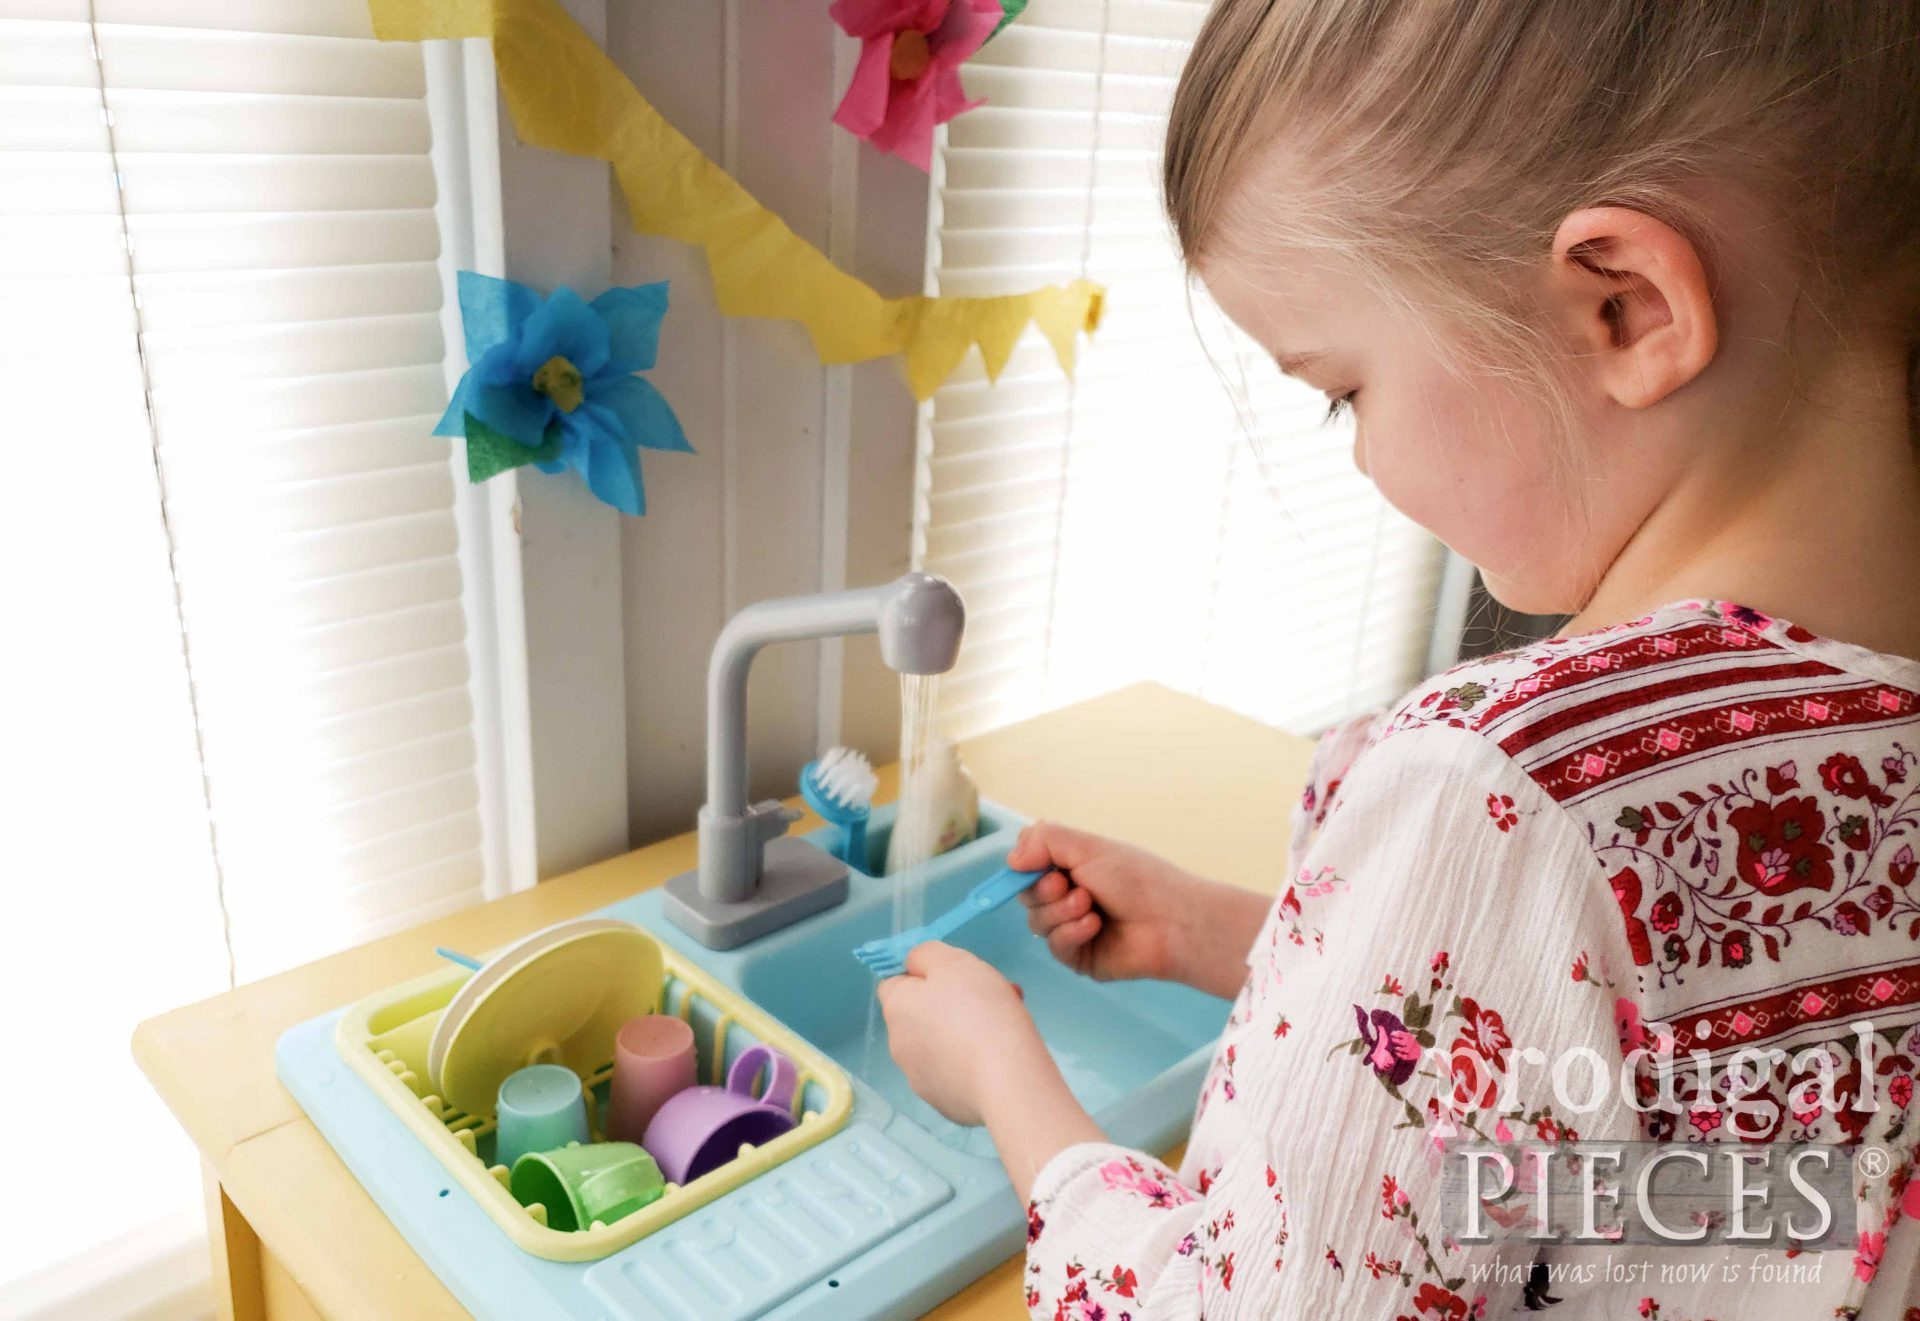 Pretend Play Washing Dishes in Upcycled Play Kitchen | prodigalpieces.com #prodigalpieces #upcycled #fun #play #kids